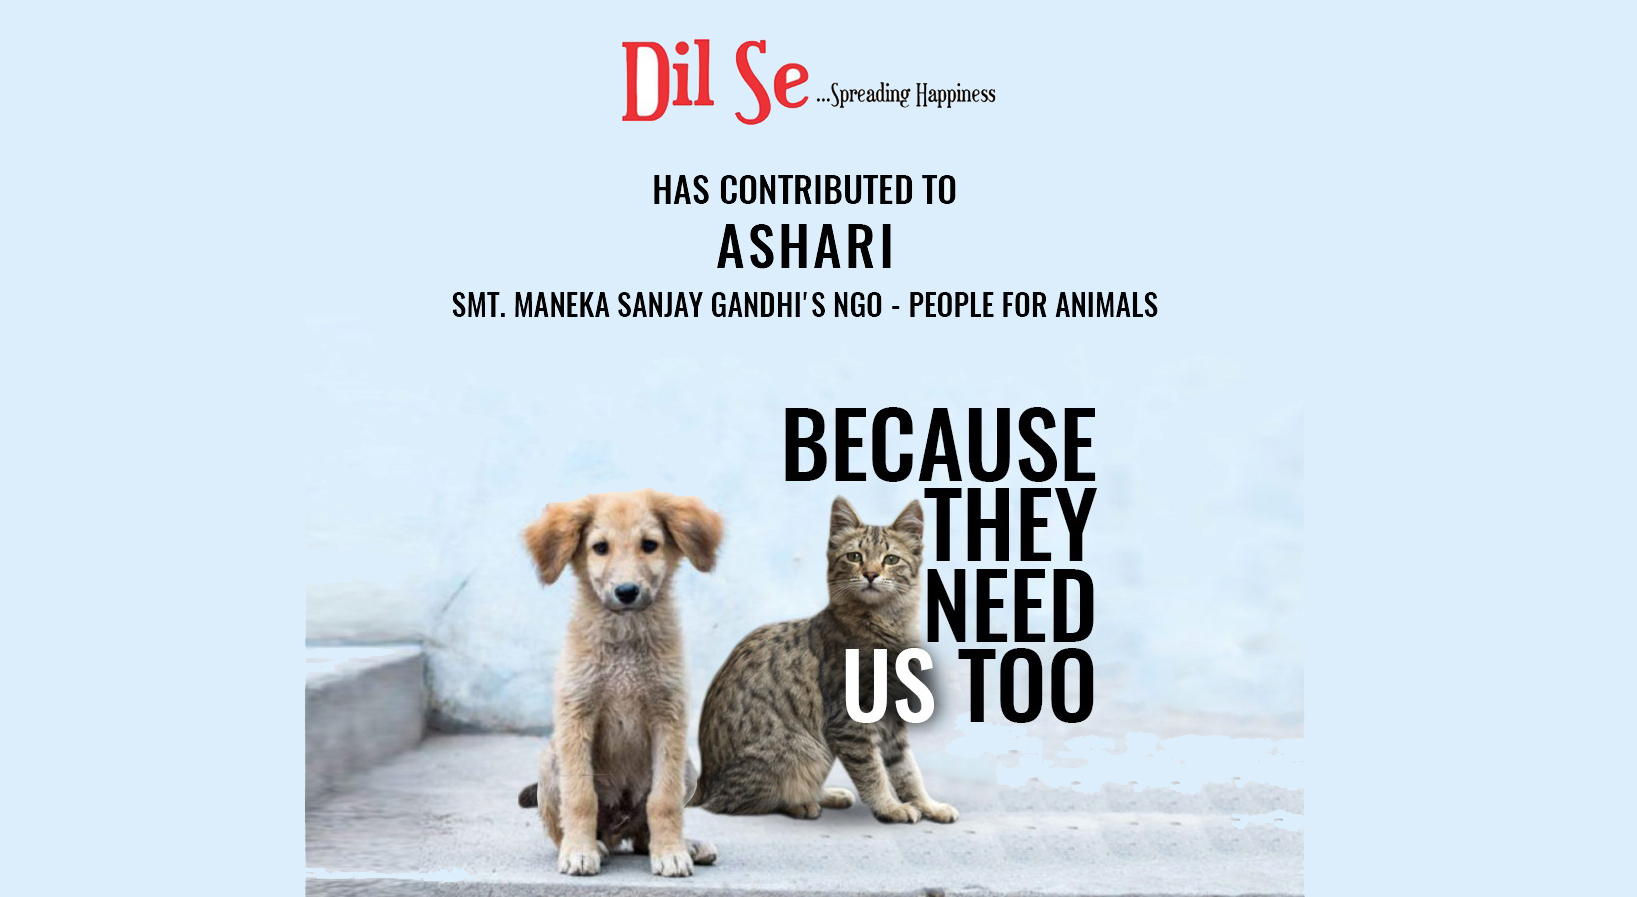 Dil Se continues to spread happiness even during Lockdown